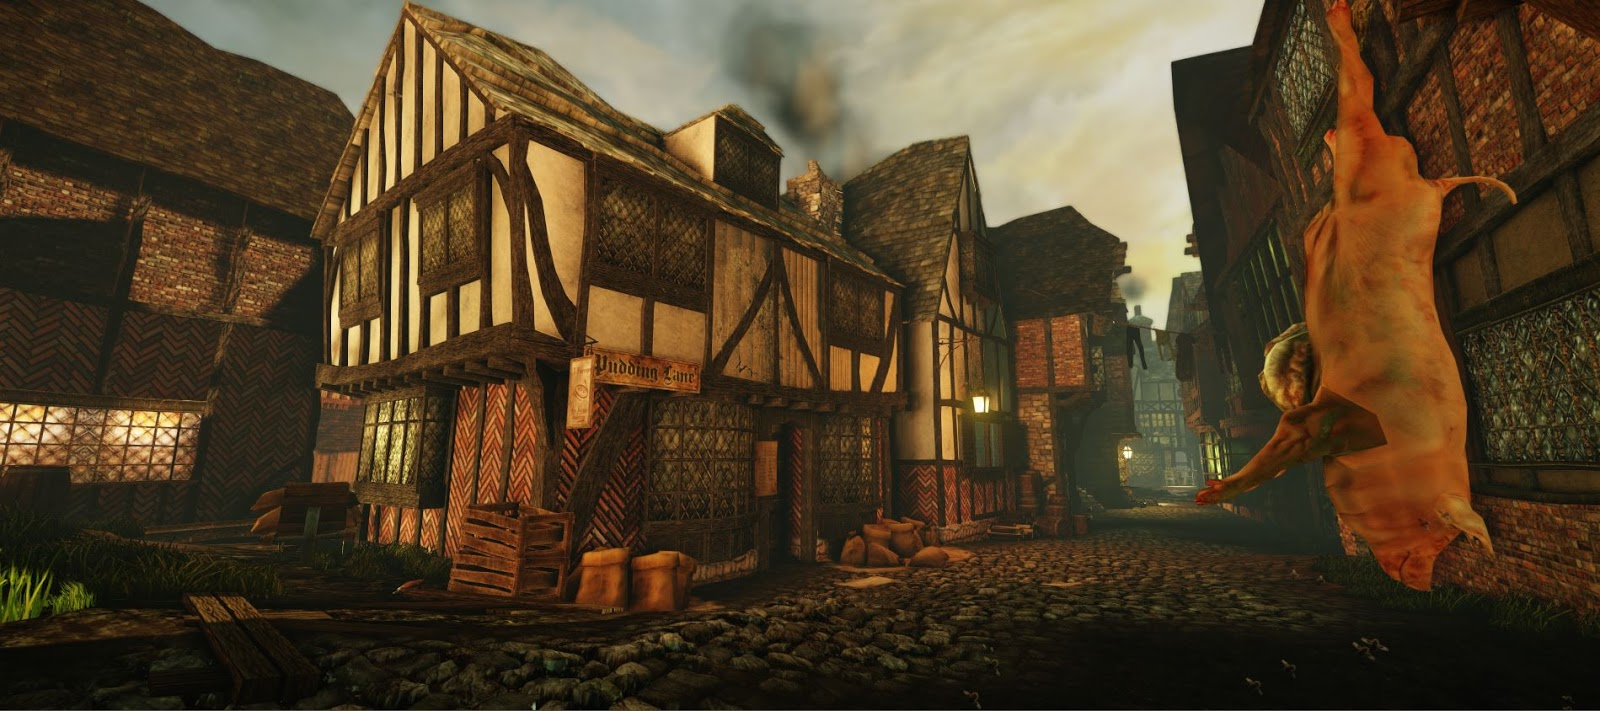 Prize-Winning Animation Lets You Fly Through 17th Century London